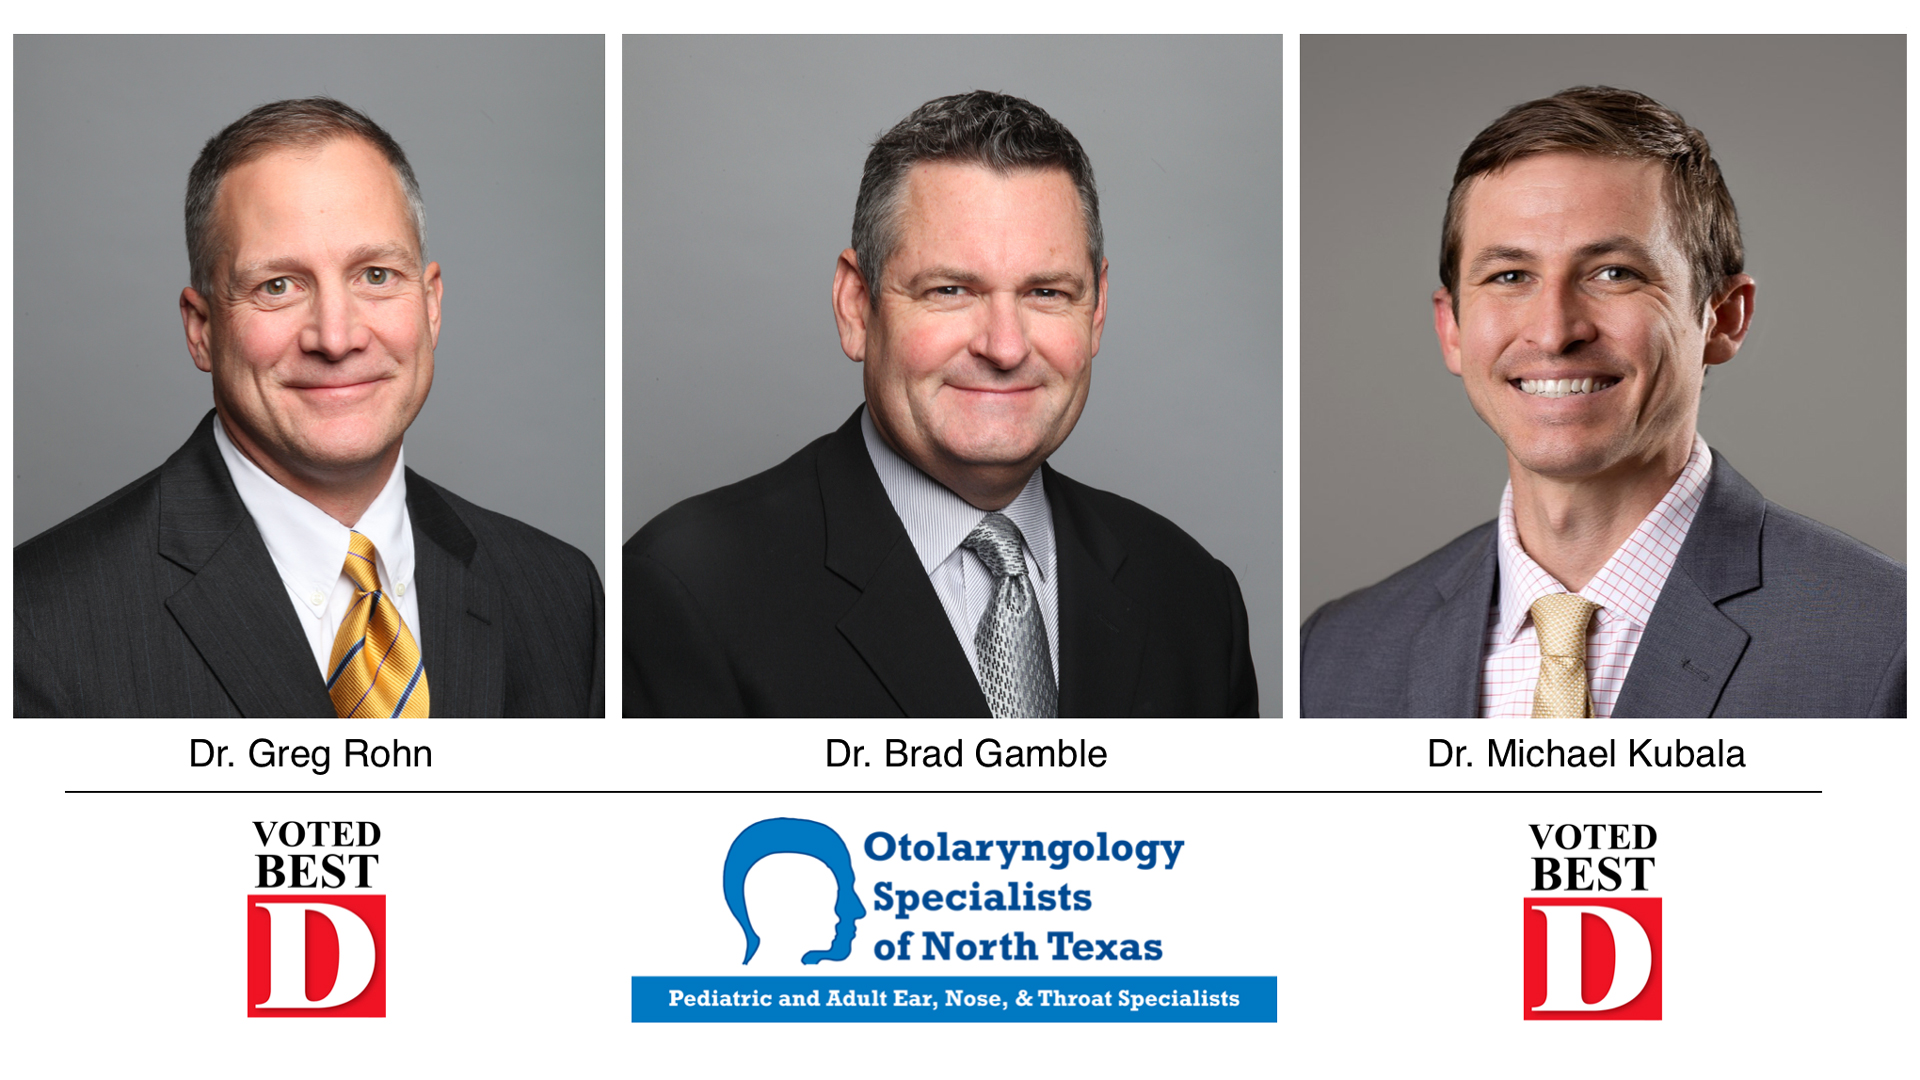 Otolaryngology Specialists of North Texas (OSNT) Dr Rohn, Dr Gamble, Dr Kubala